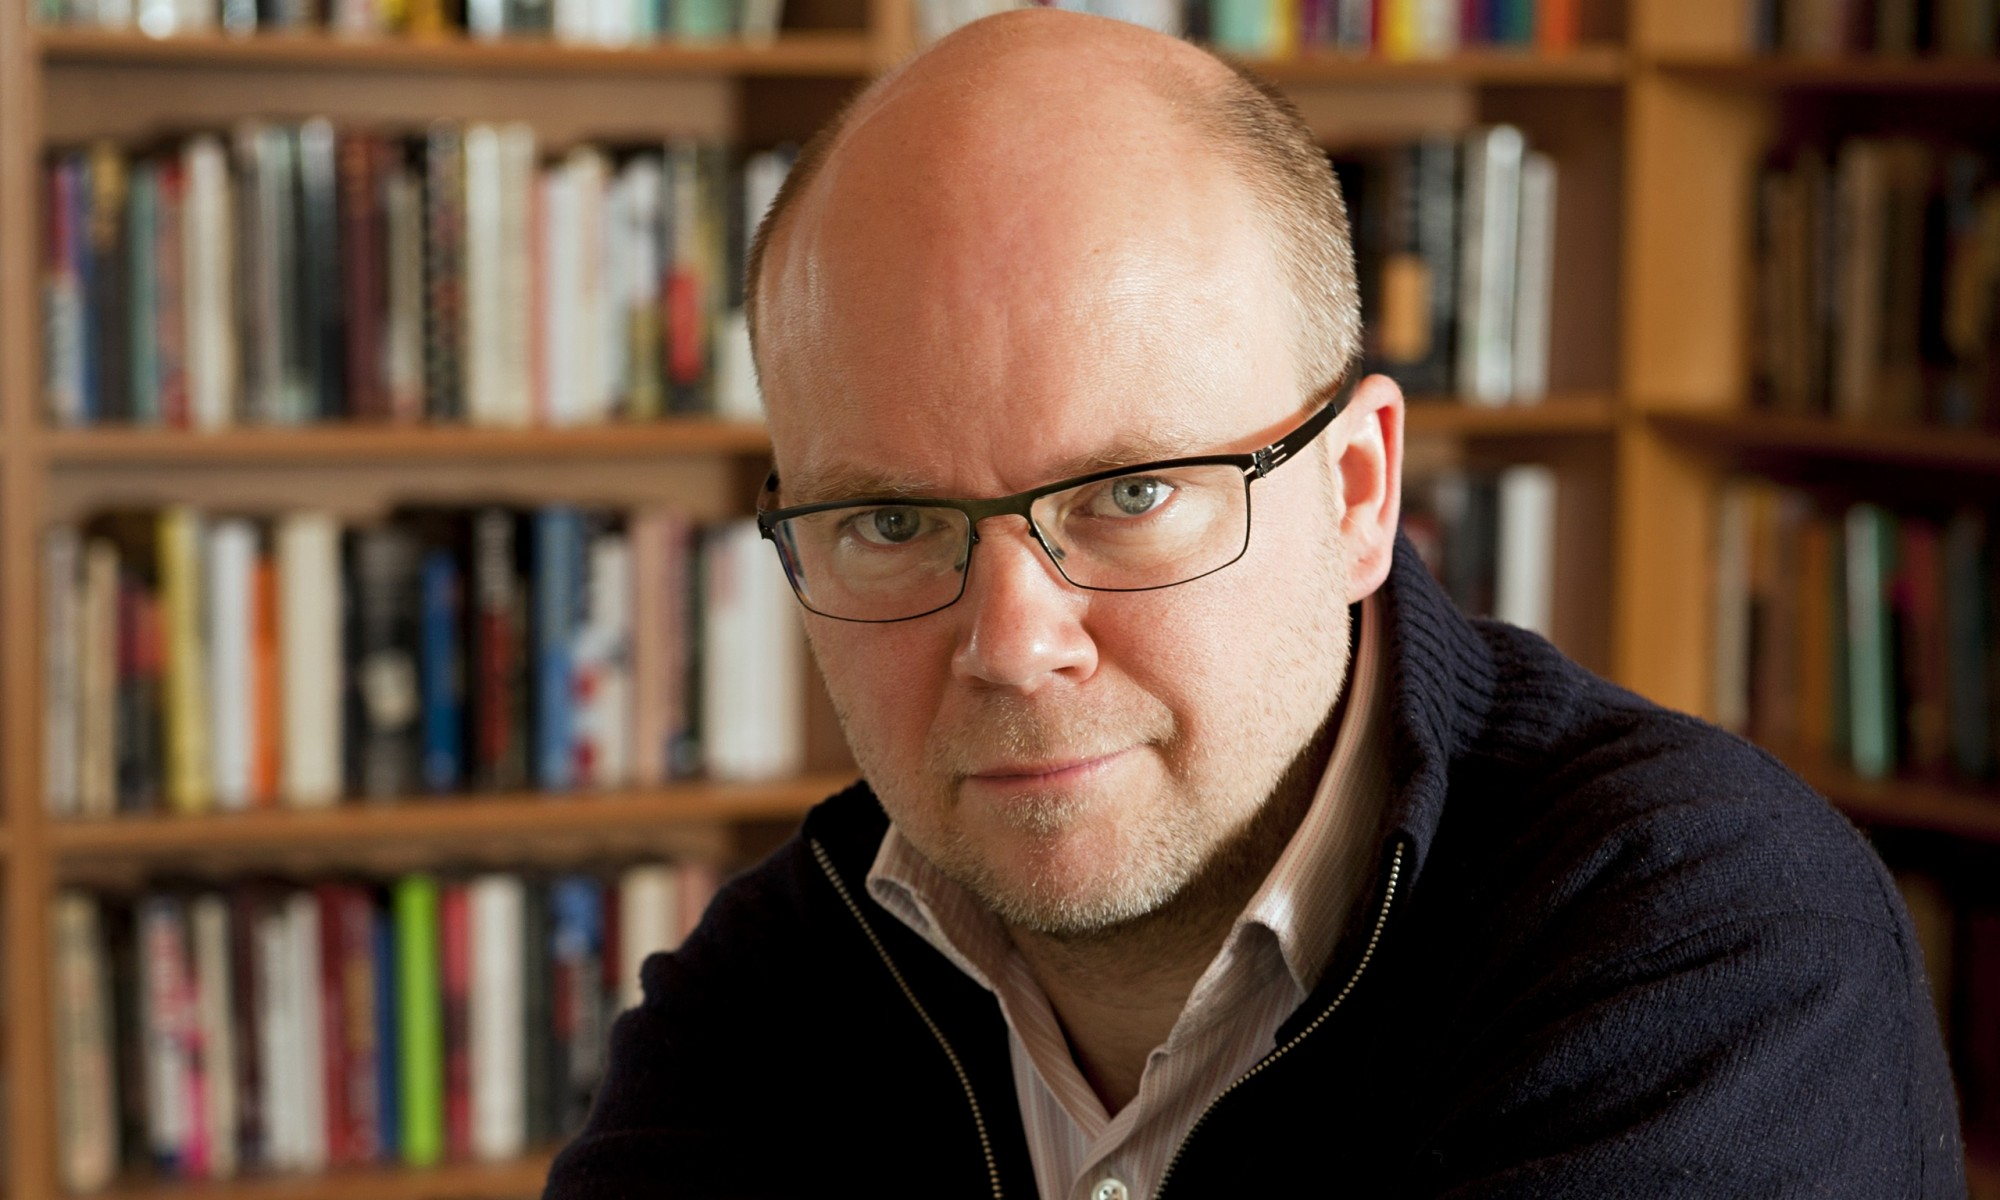 With Toby Young